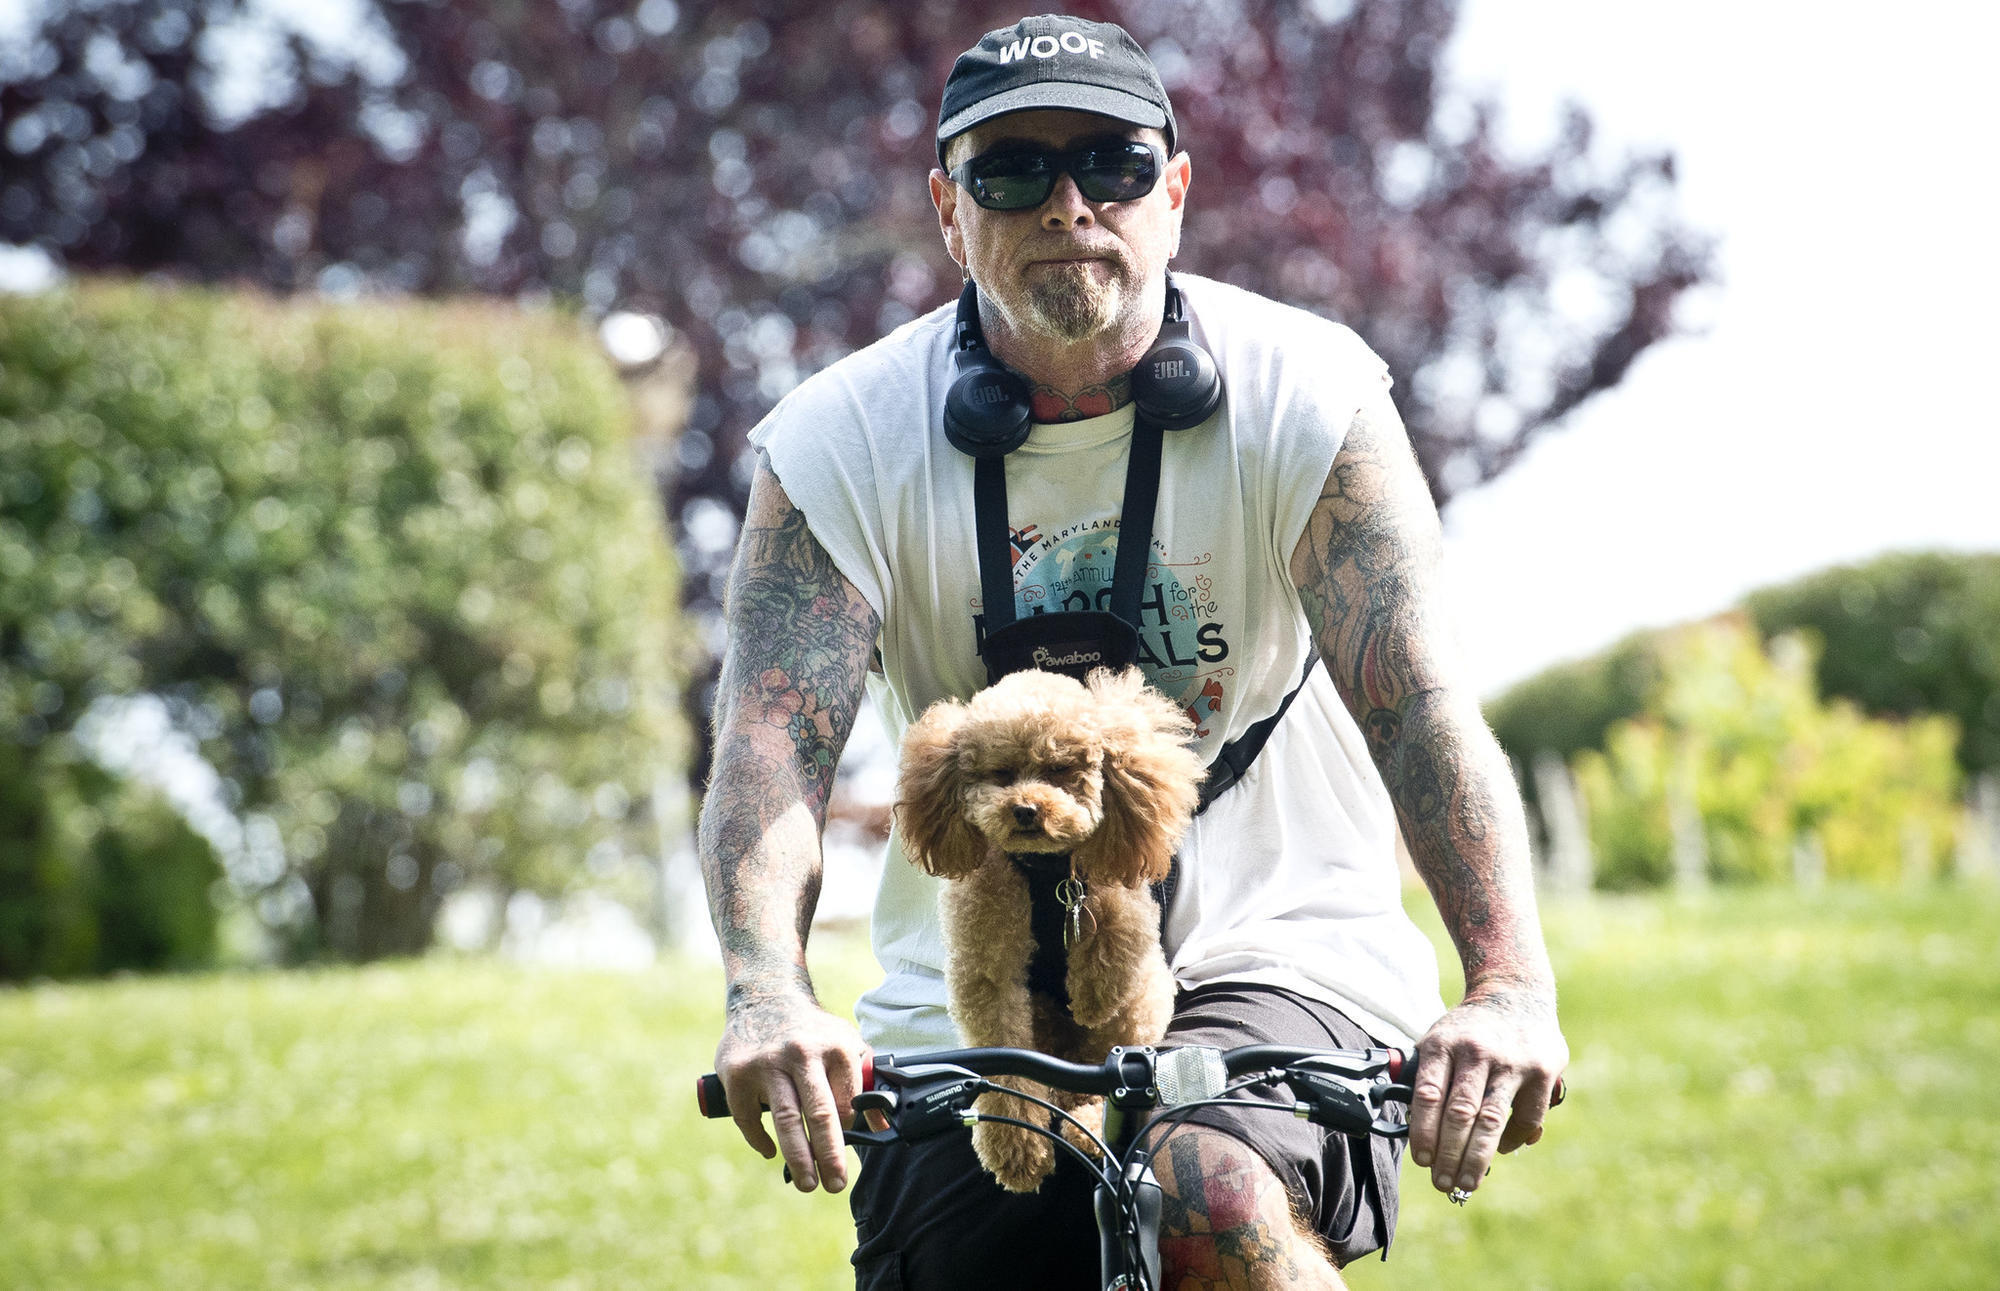 For Father's Day, some raise money for SPCA with their dogs